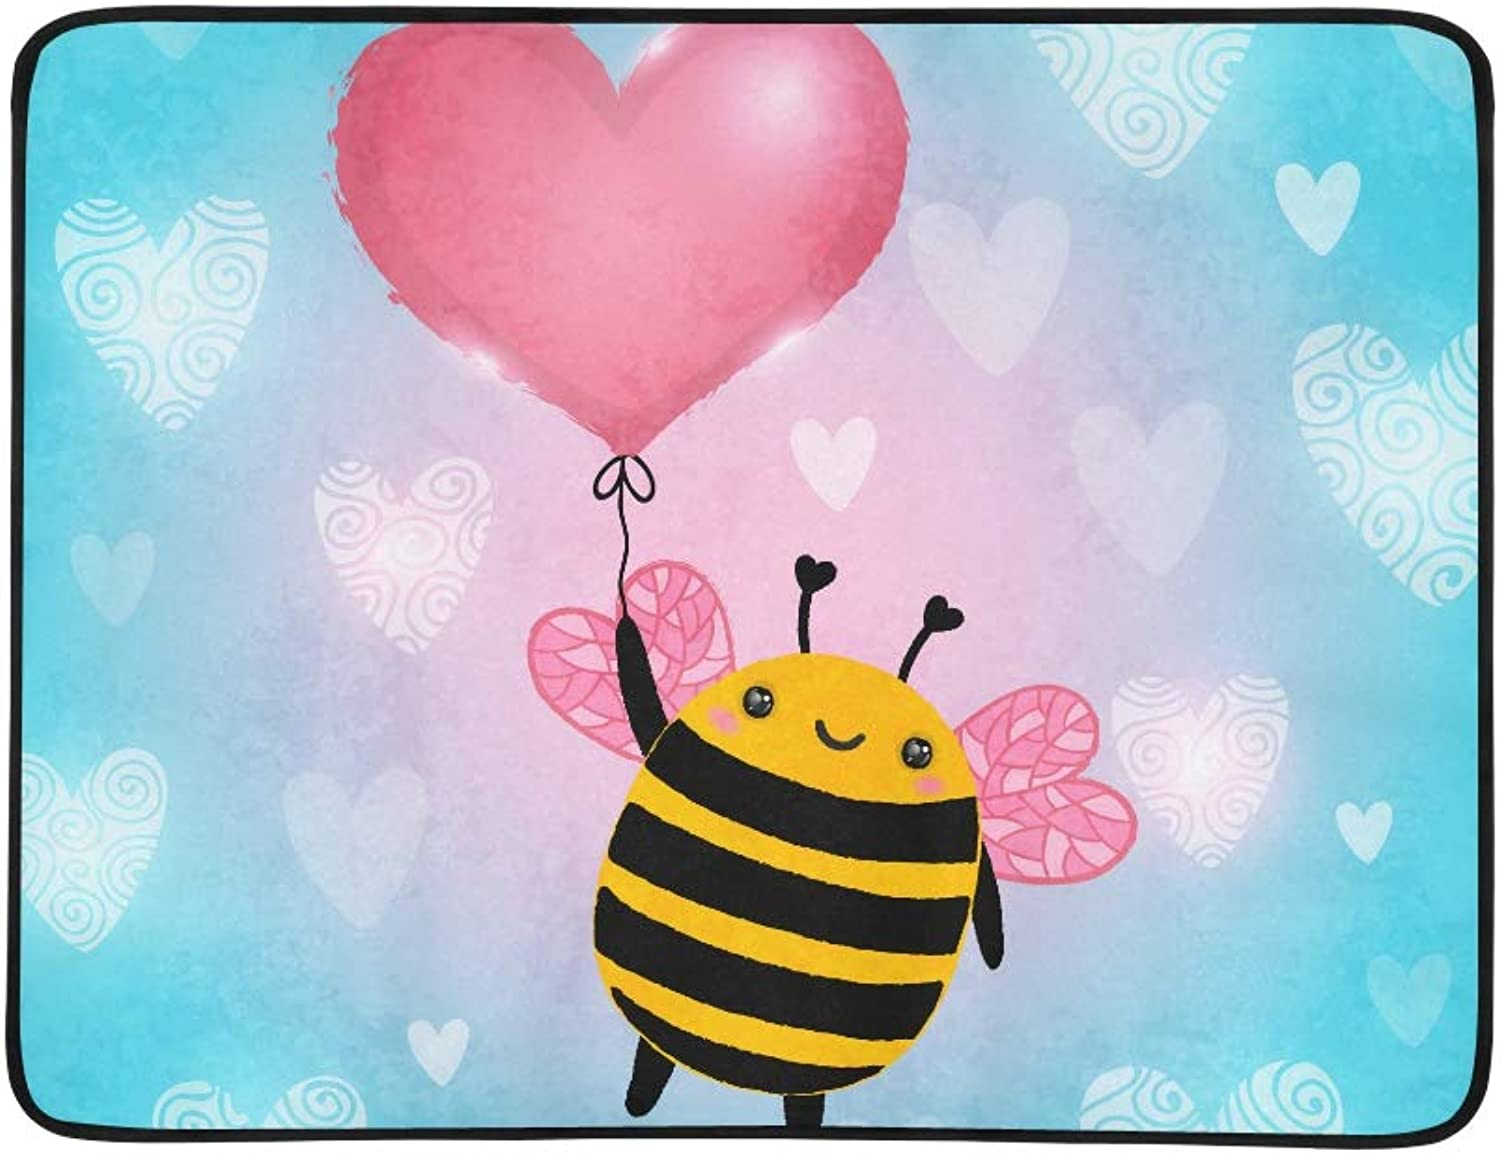 Cute Queen Bee with Heart Balloon Pattern Portable and Foldable Blanket Mat 60x78 Inch Handy Mat for Camping Picnic Beach Indoor Outdoor Travel